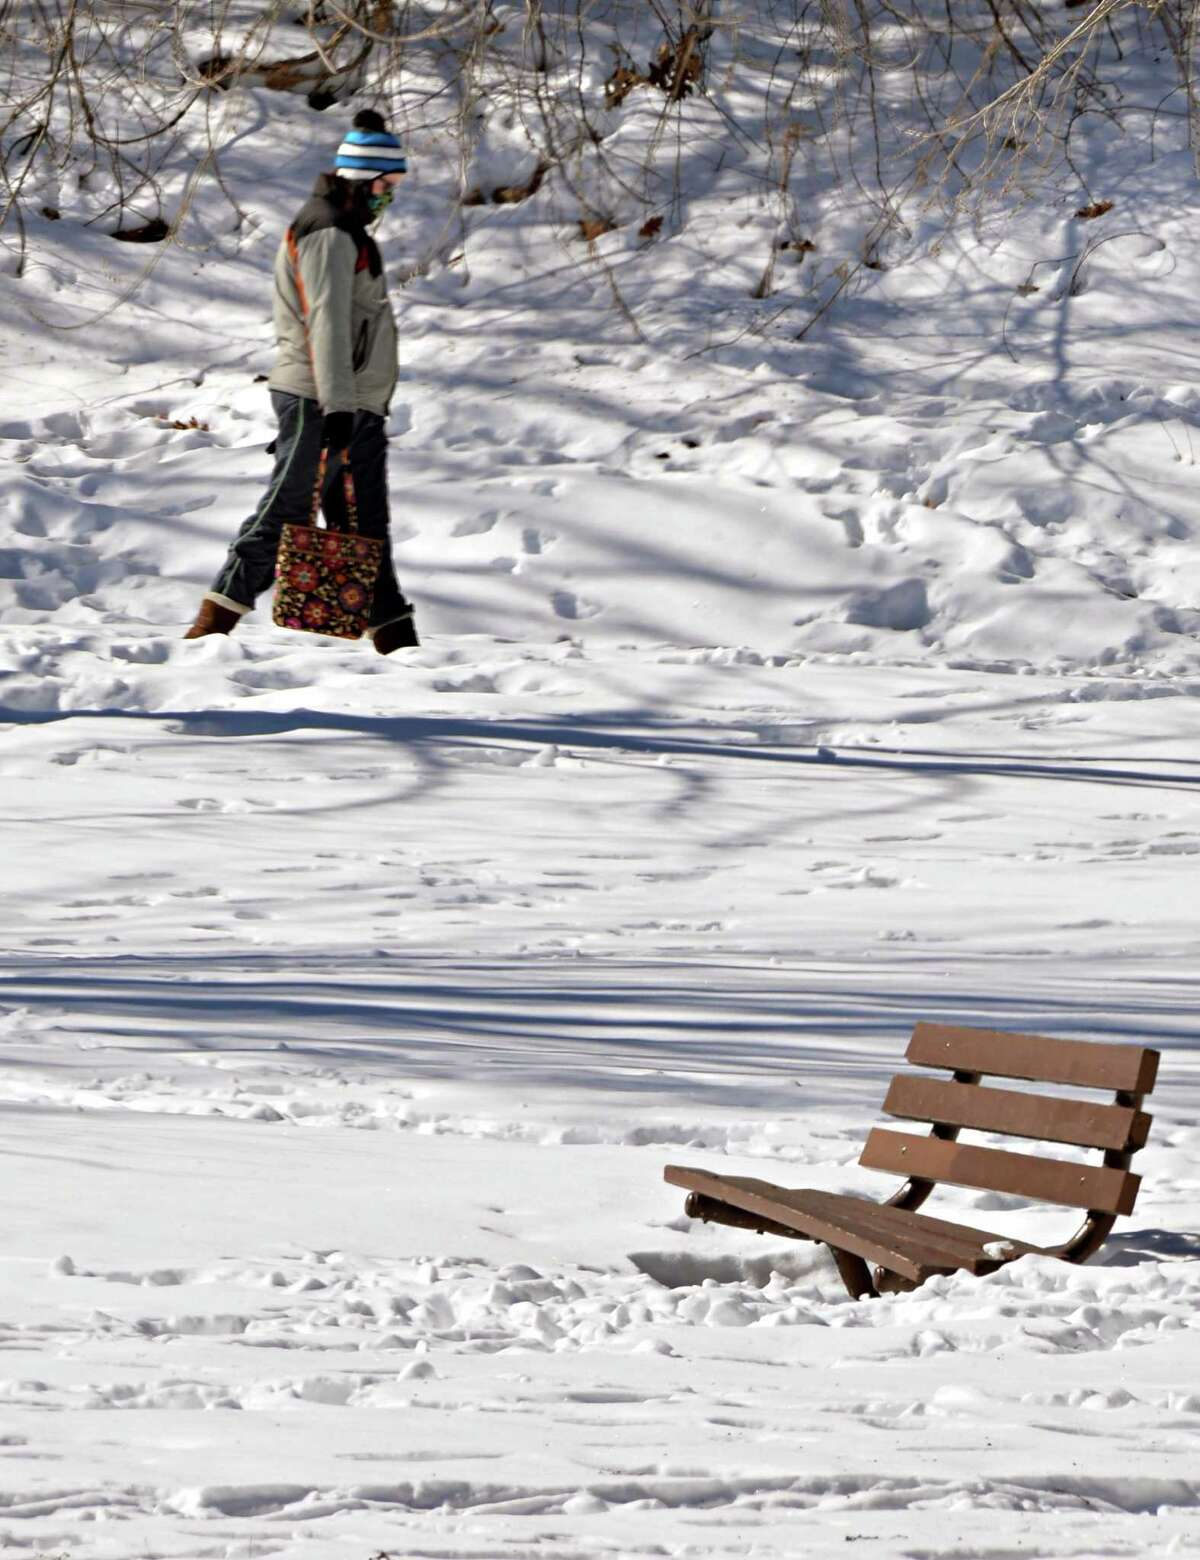 A solitary figure walks through a snow-covered Congress Park Thursday March 6, 2014, in Saratoga Springs, NY. (John Carl D'Annibale / Times Union)